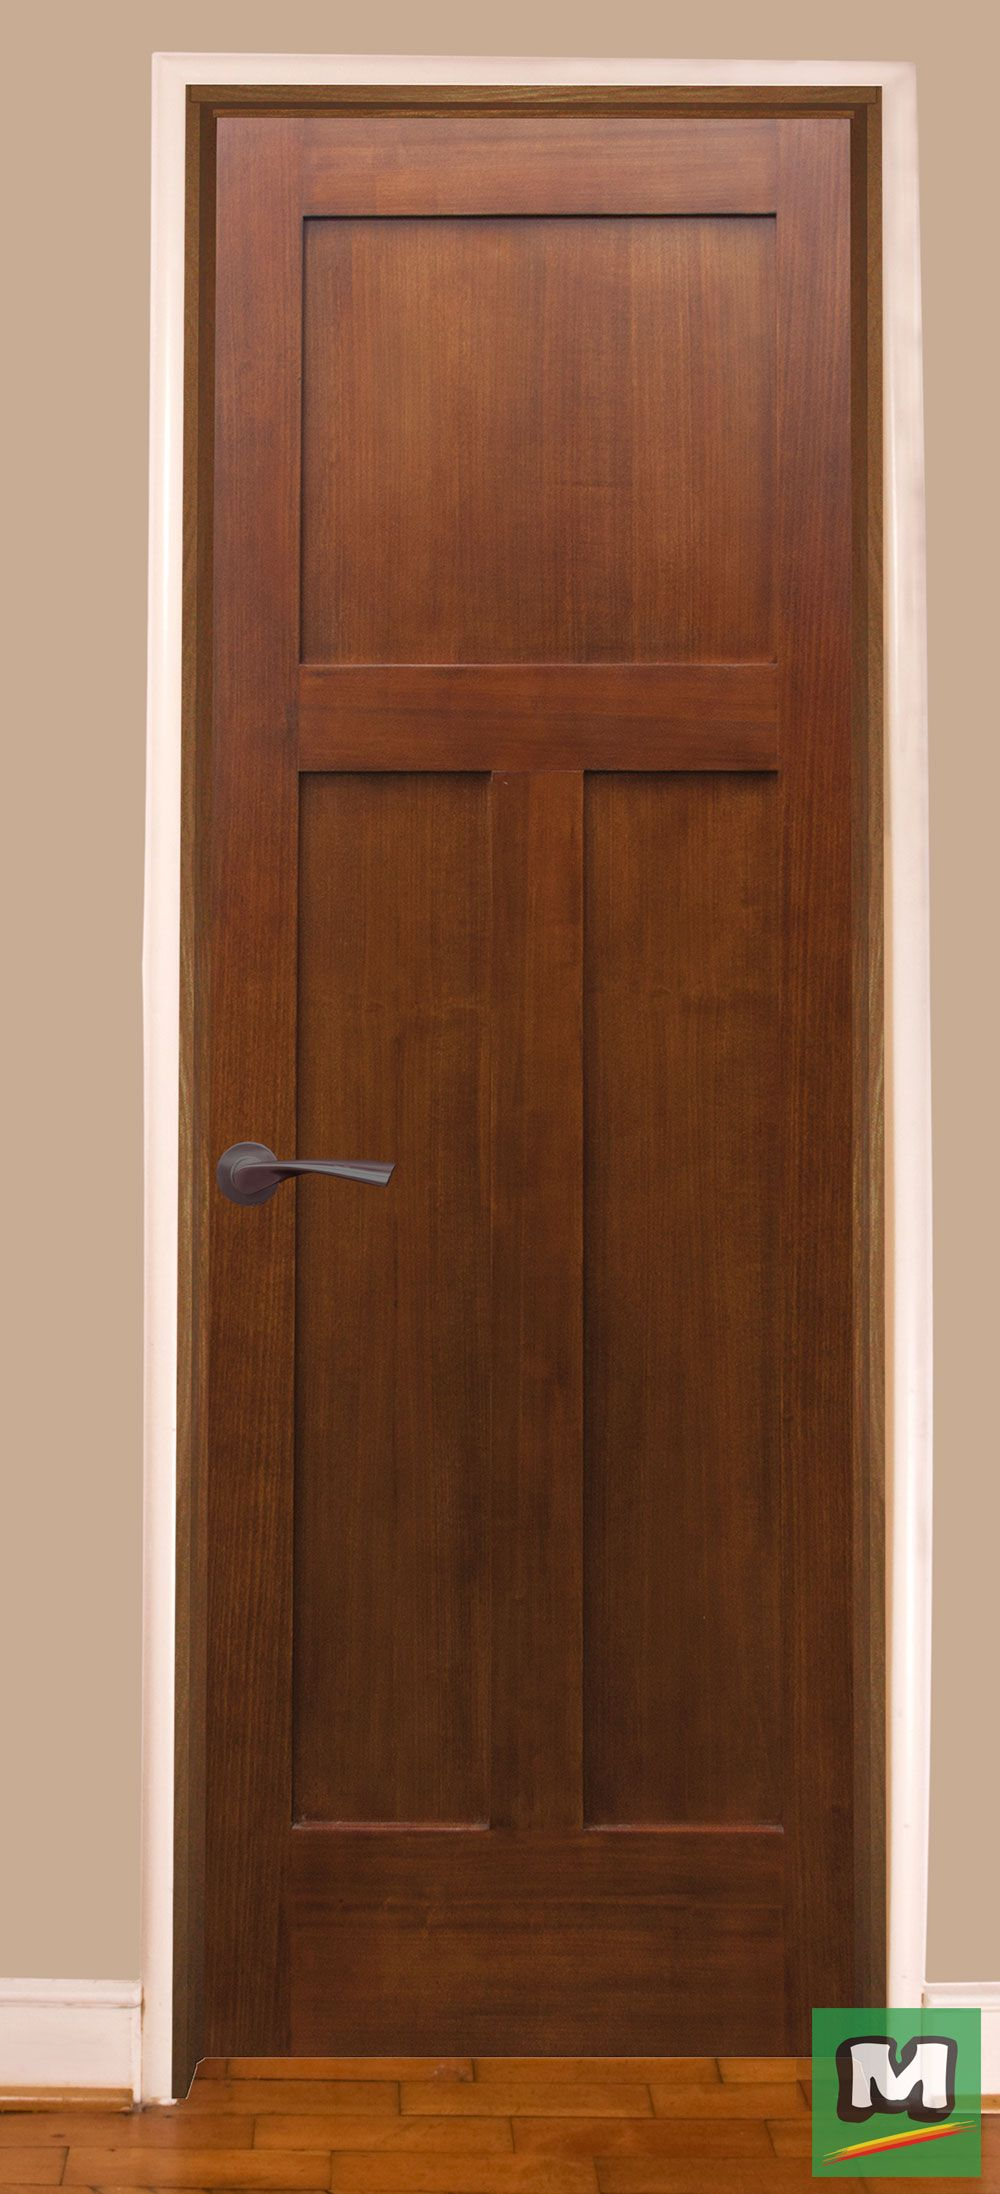 Add This Mastercraft 3 Panel Craftsman Door With Frame To Any Room